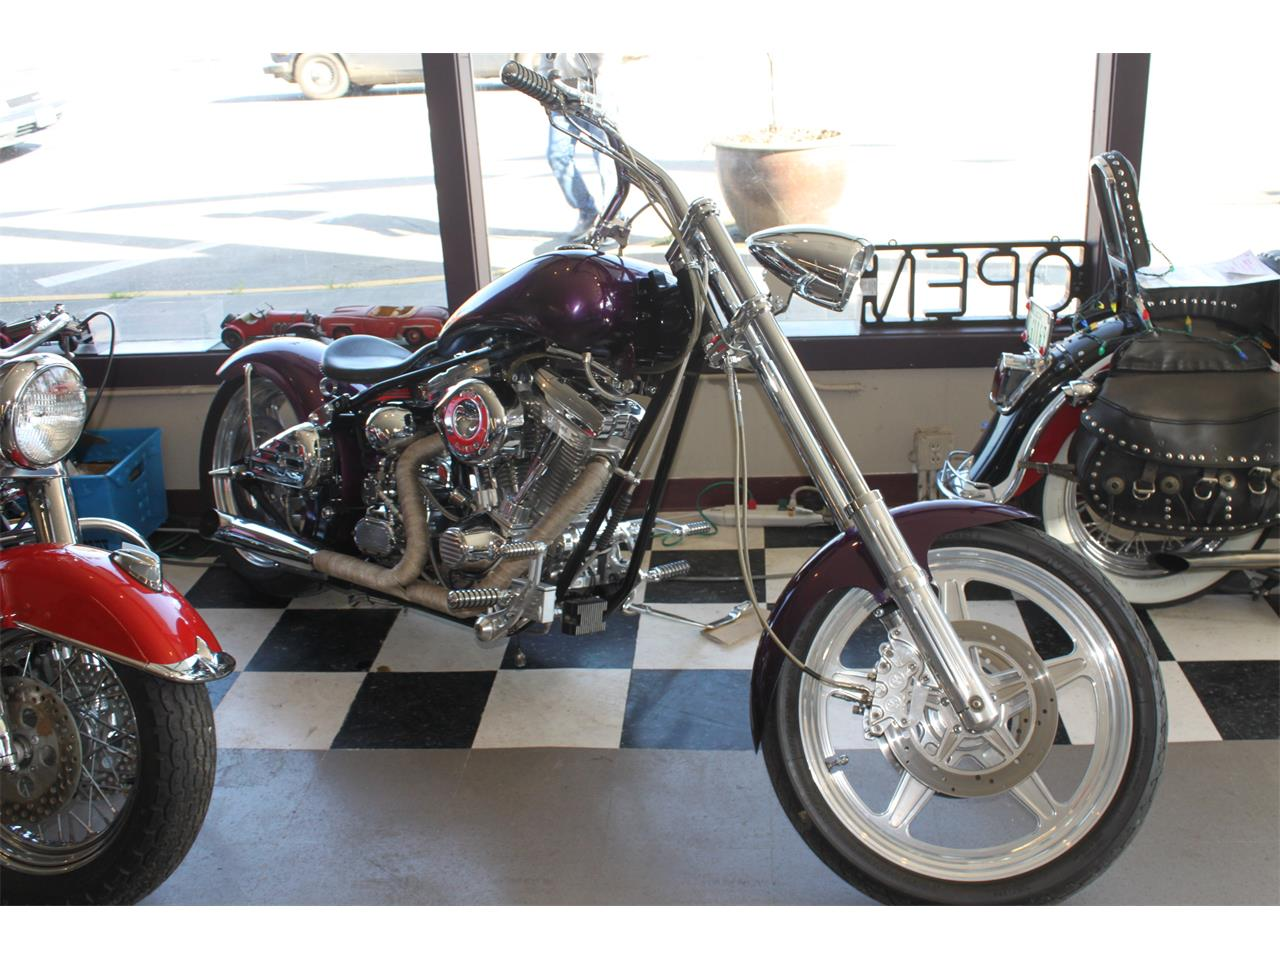 2004 Harley-Davidson Motorcycle (CC-1191921) for sale in Carnation, Washington